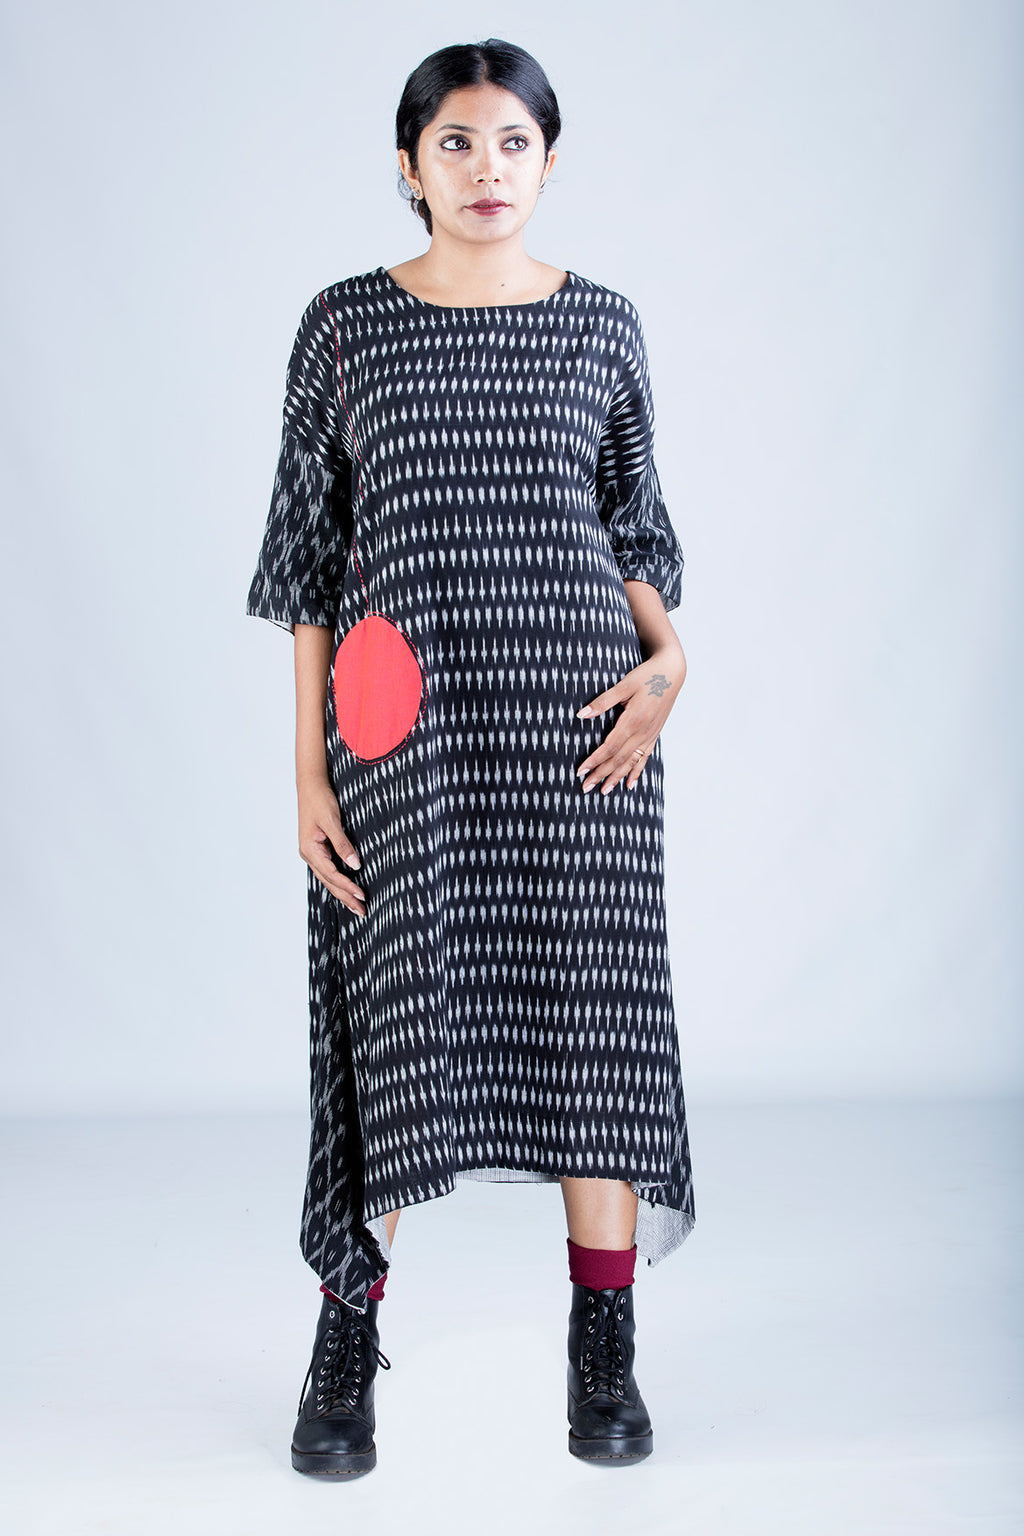 Black Ikat Dress - KARL - Upasana Design Studio